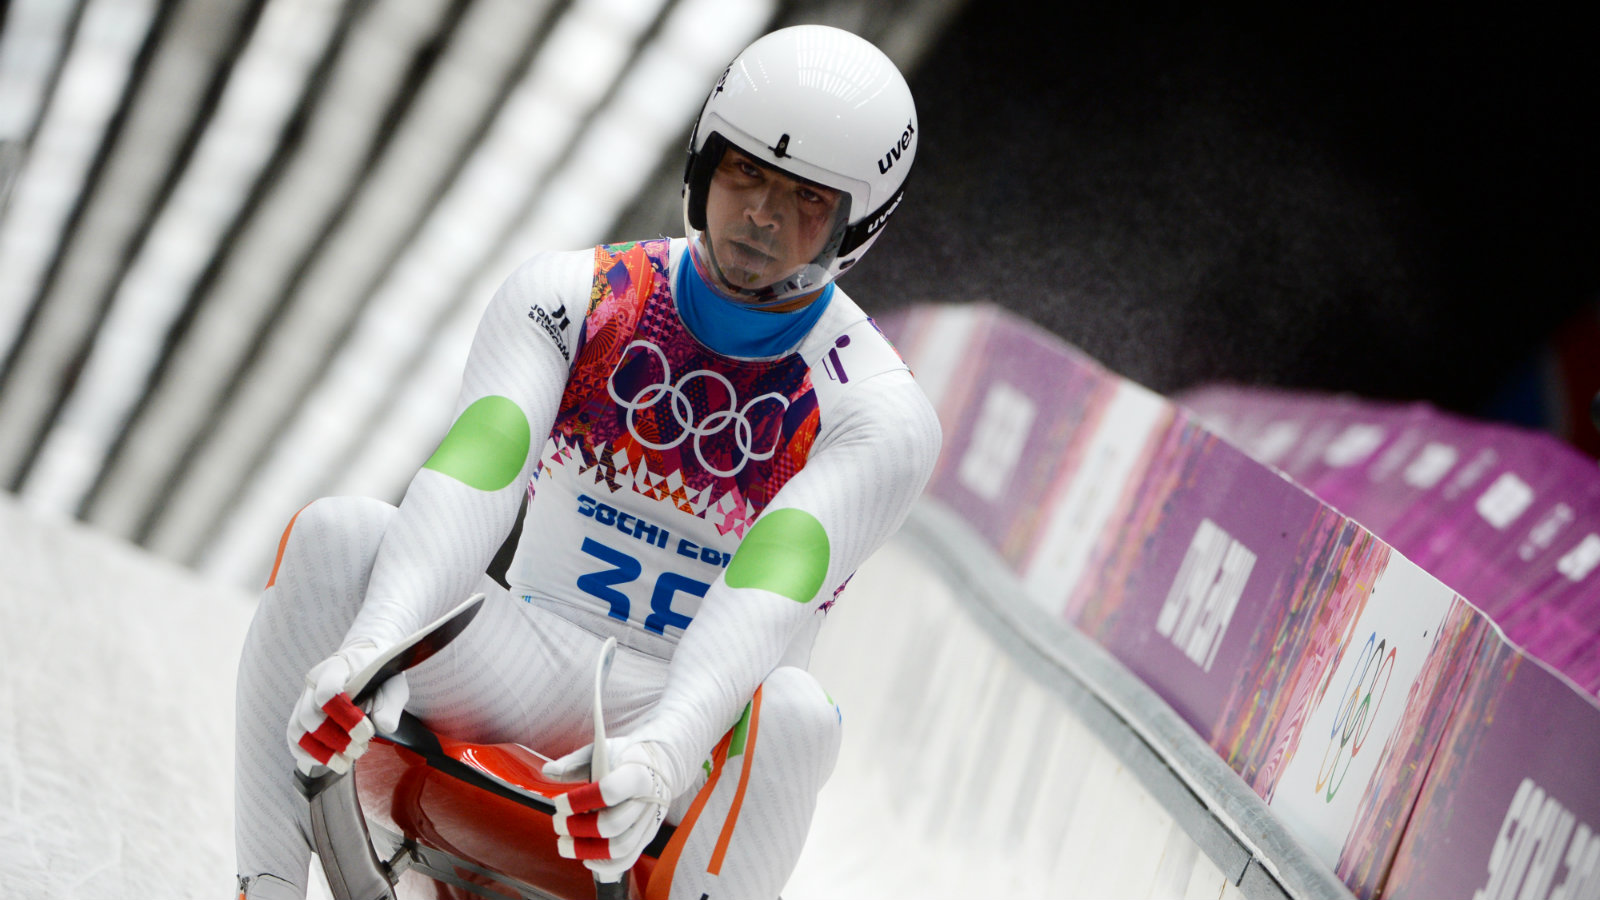 Shiva Keshavan of India starting as an Independent Olympic Athlete (IOP) arrives to the finish in his second run in the men's singles Luge at the Sanki Sliding Center at the Sochi 2014 Olympic Games, Krasnaya Polyana, Russia, 09 February 2014.